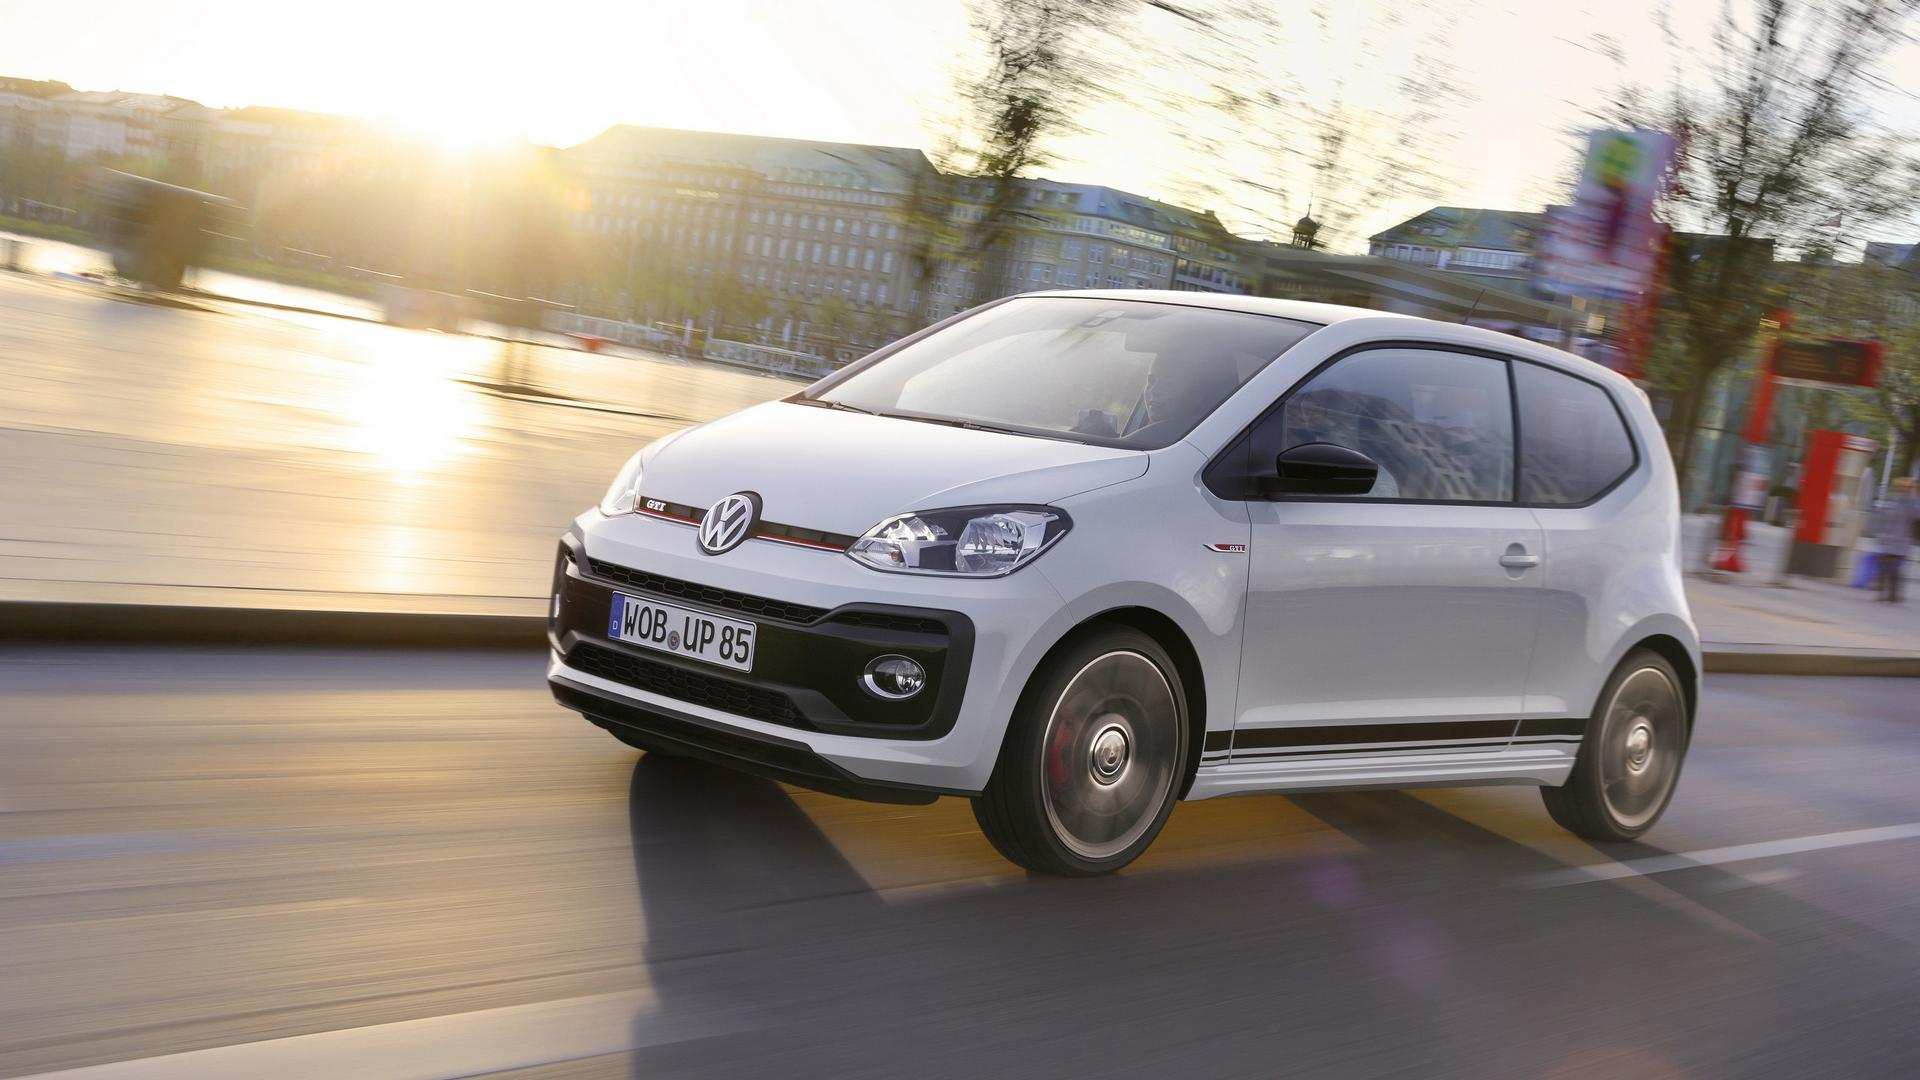 90 New Volkswagen Up 2020 Redesign and Concept